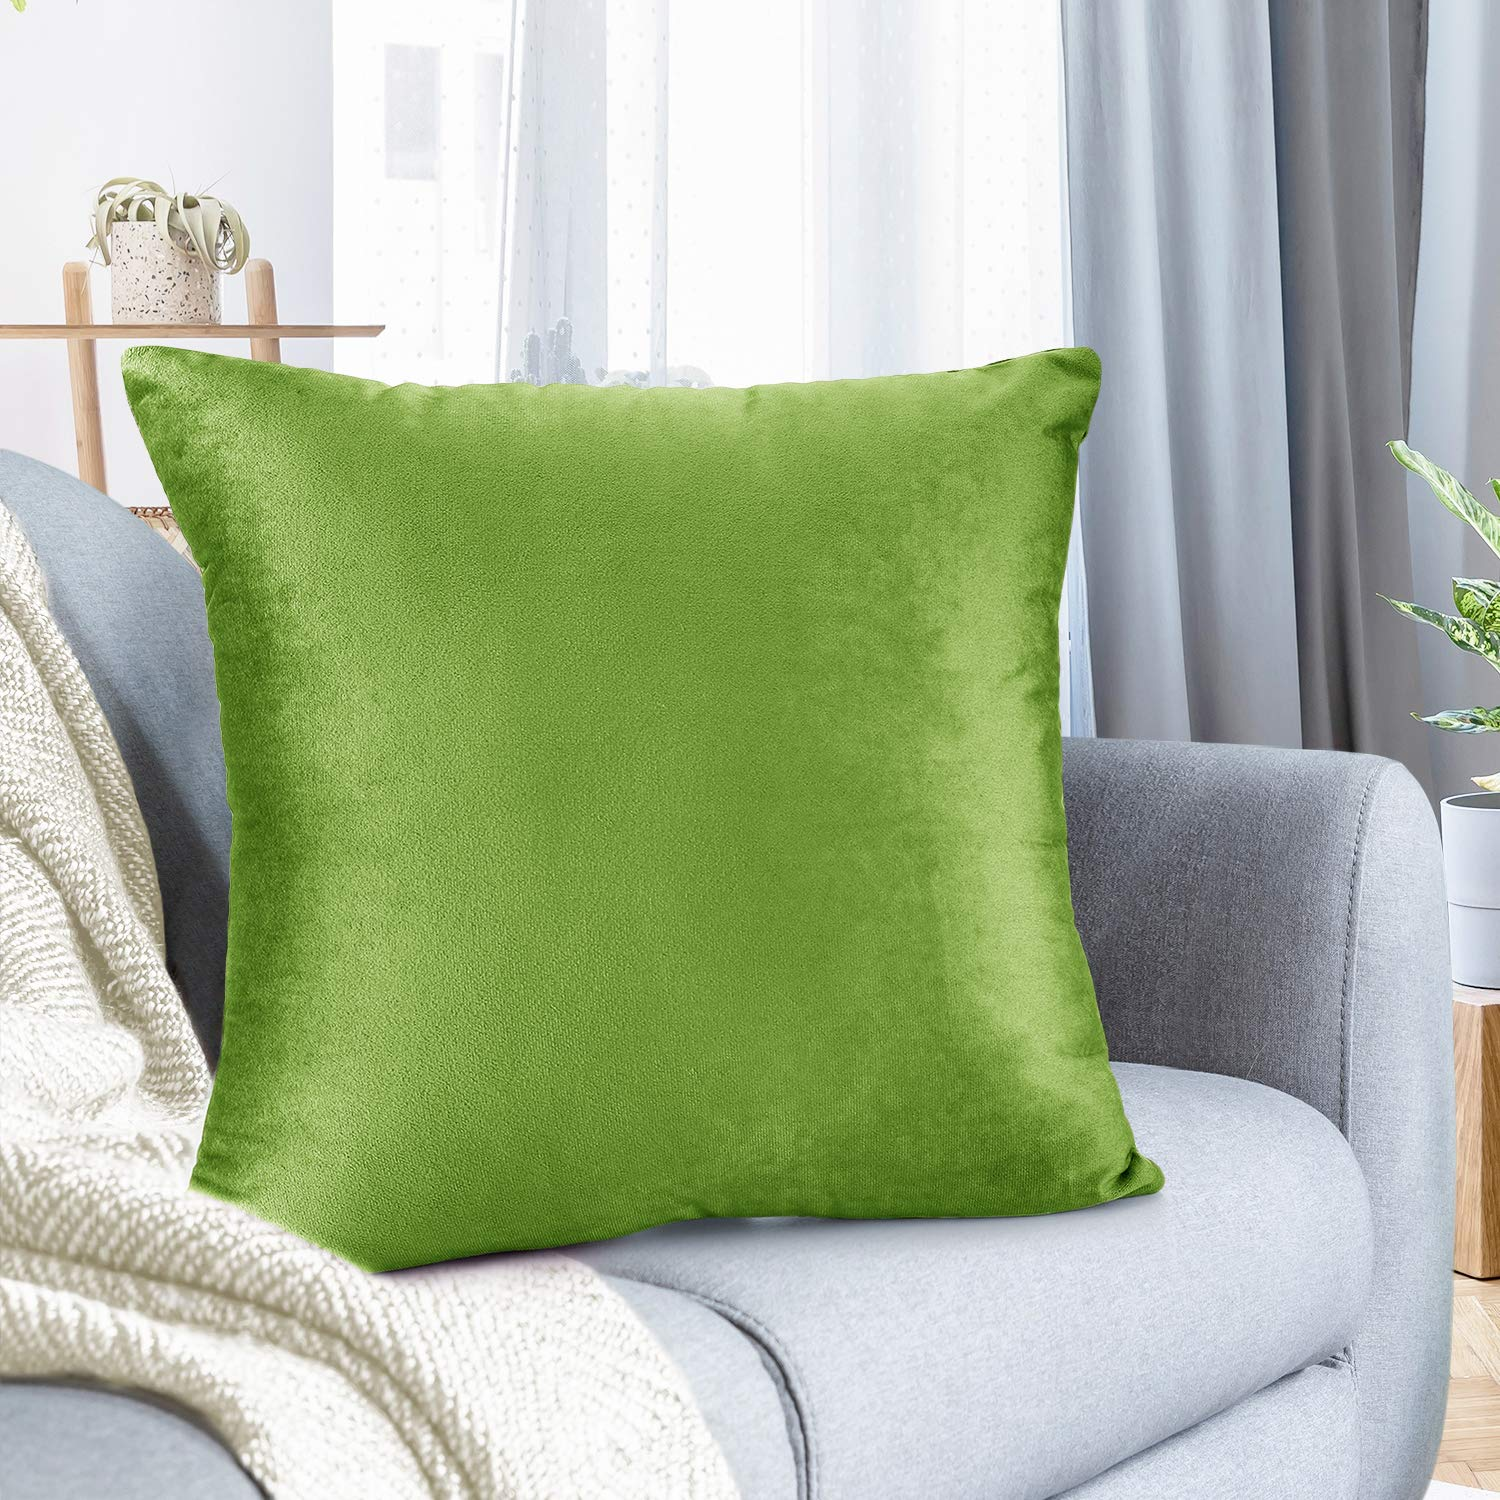 """Nestl Bedding Throw Pillow Cover 18"""" x 18"""" Soft Square Decorative Throw Pillow Covers Cozy Velvet Cushion Case for Sofa Couch Bedroom - Garden Green"""